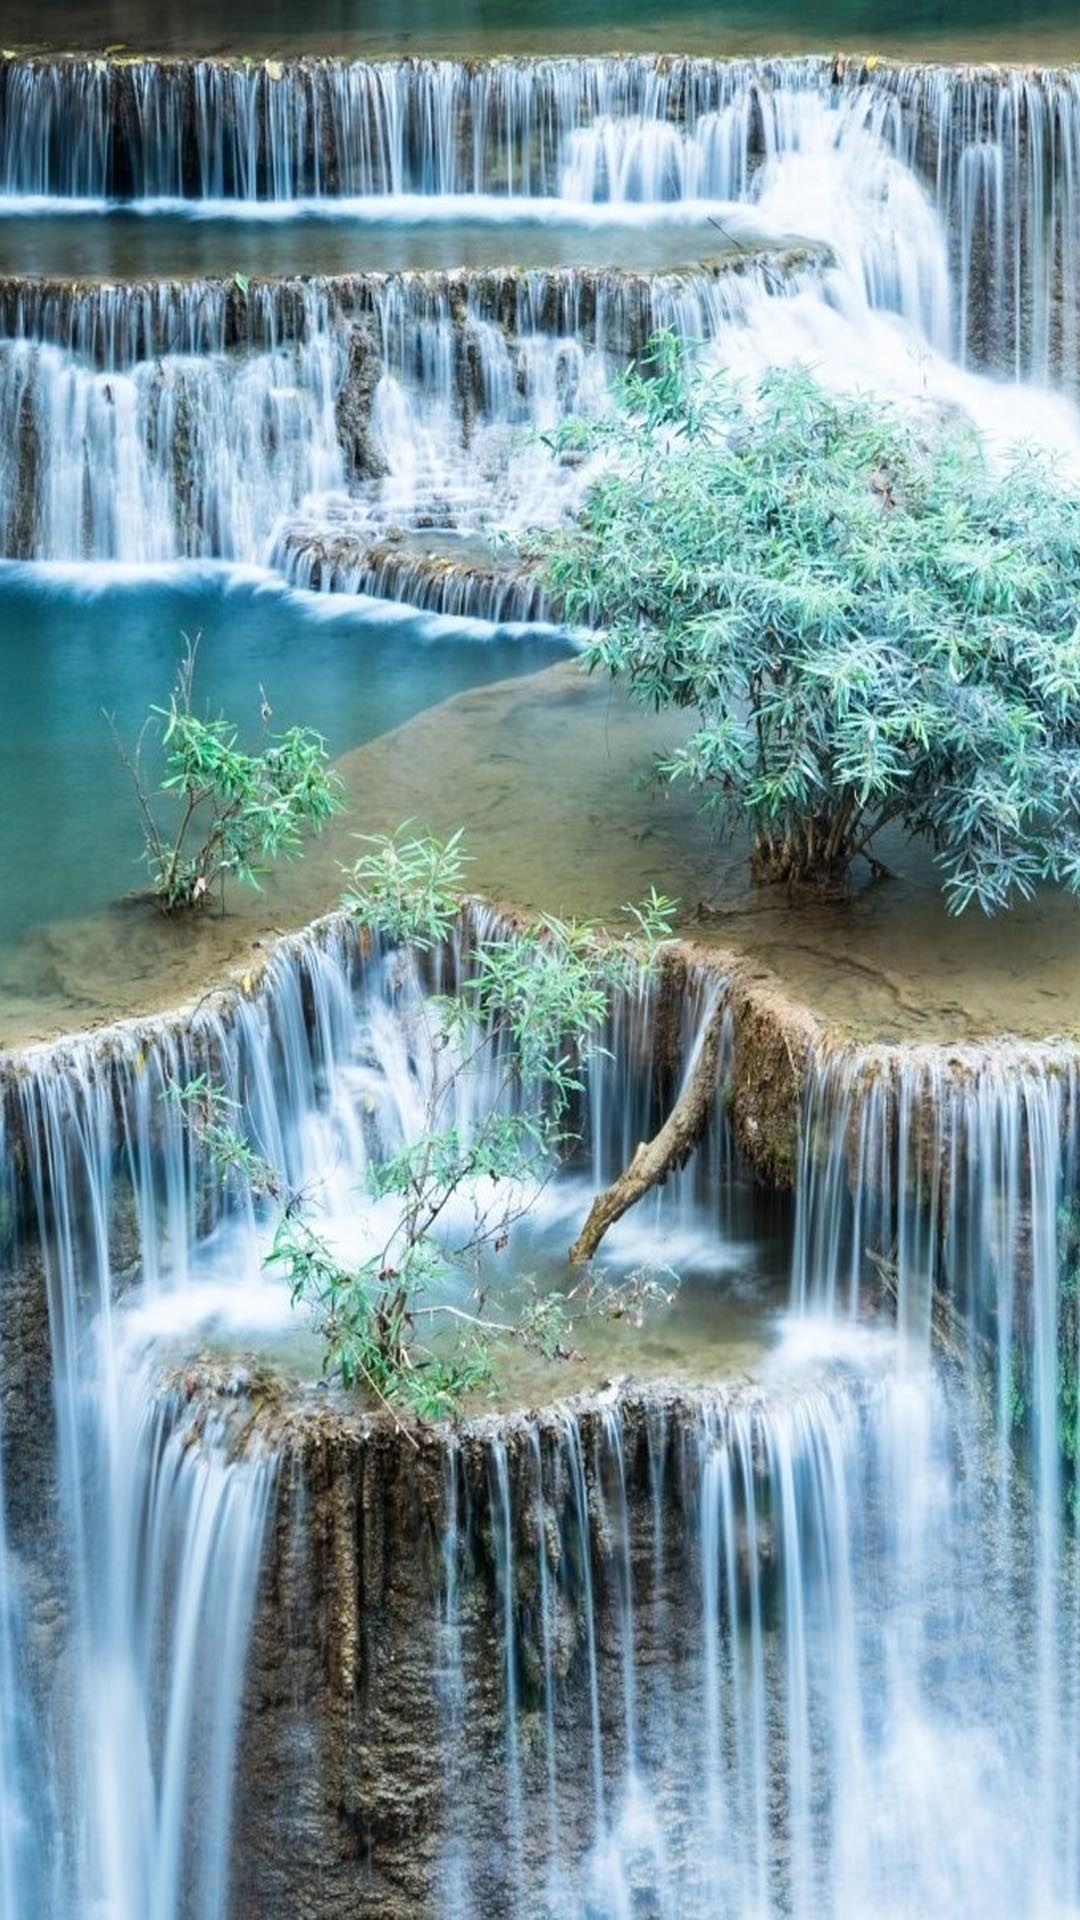 Waterfall Nature Wallpapers Top Free Waterfall Nature Backgrounds Wallpaperaccess Nature Waterfall Nature Photography